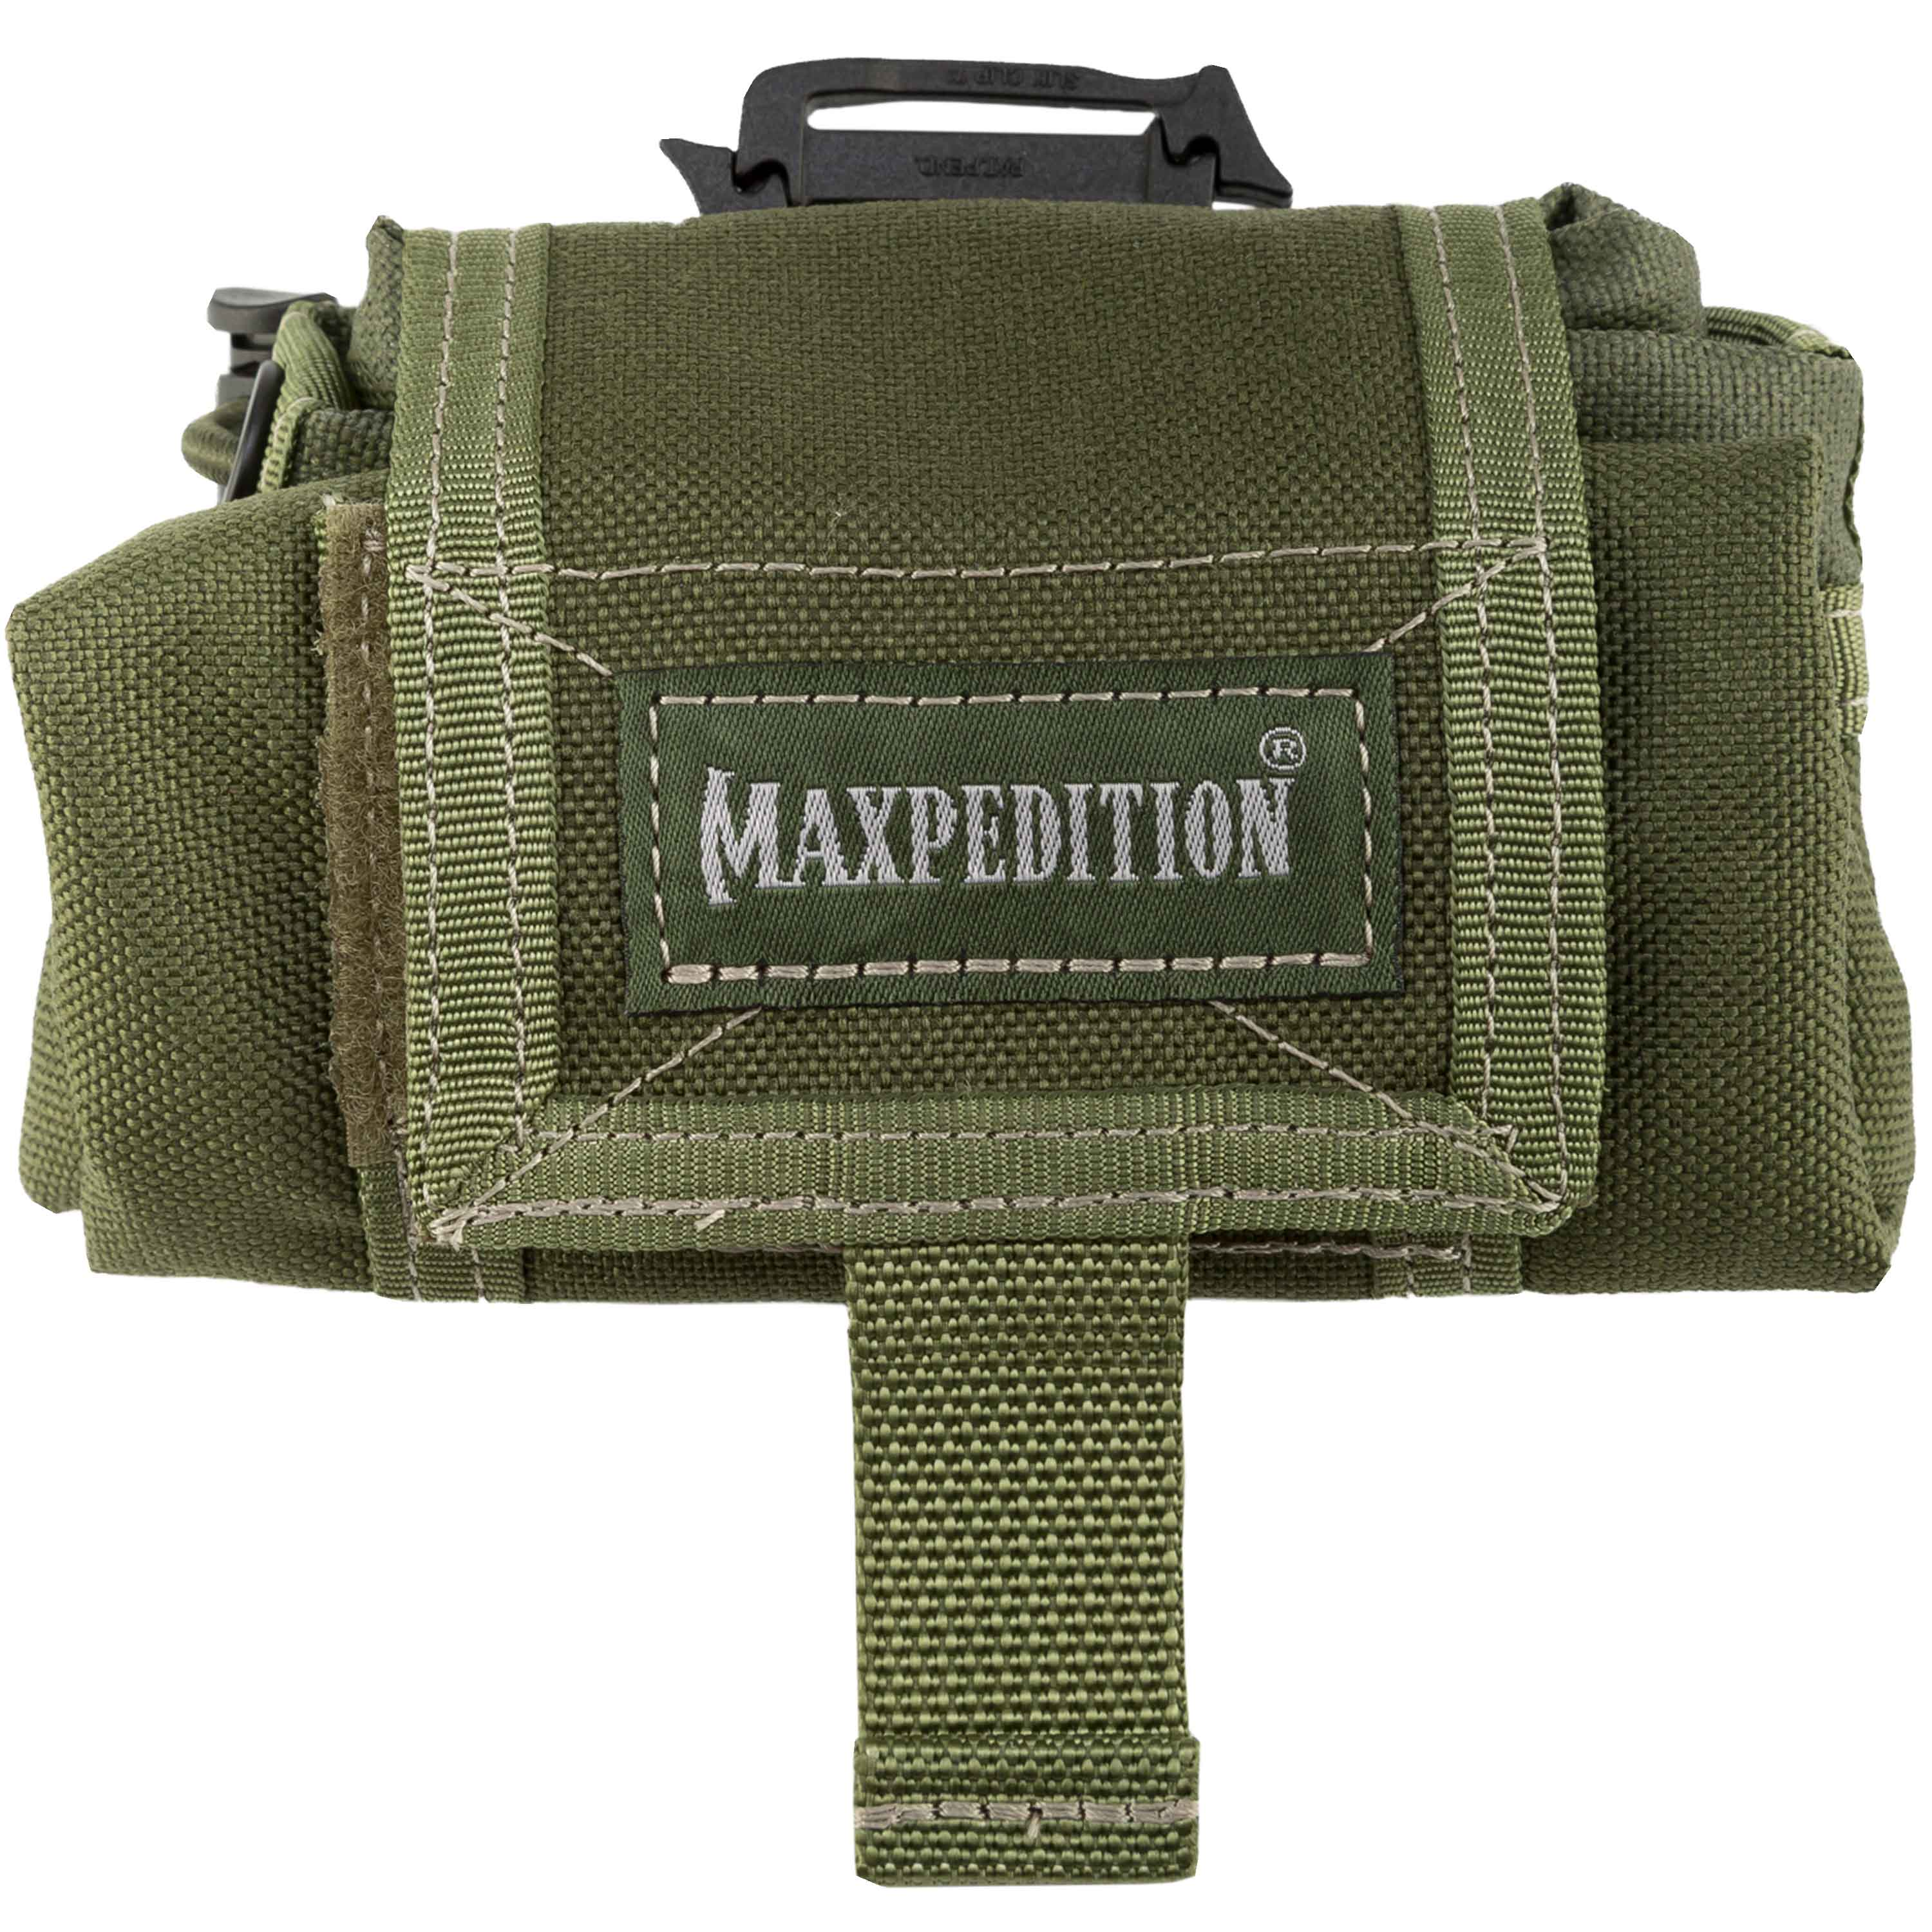 Maxpedition Rollypoly olive